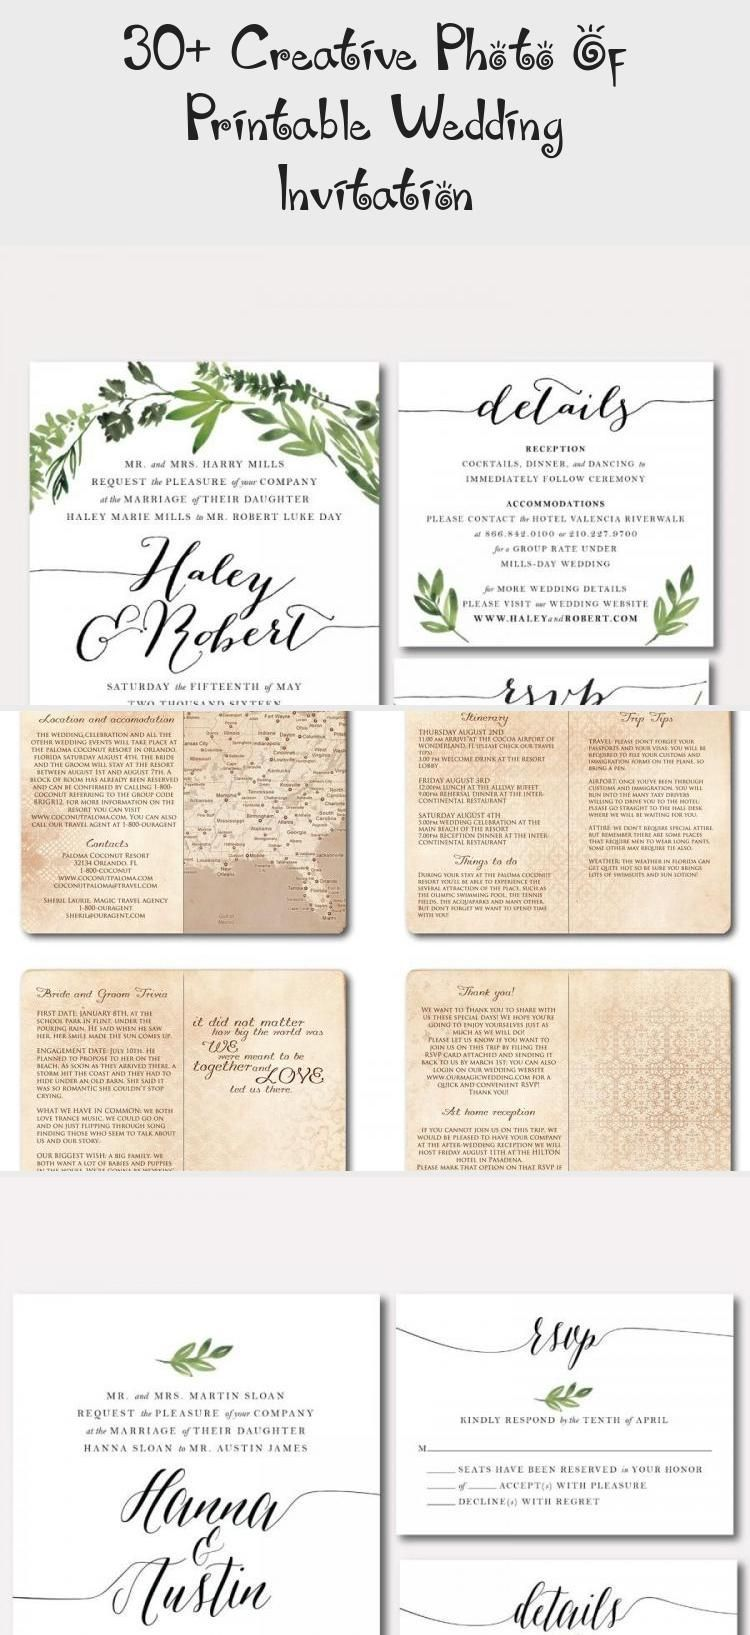 30 Creative Photo Of Printable Wedding Invitation Wedding 30 Creat In 2020 Floral Wedding Invitations Printable Printable Wedding Invitations Wedding Printables